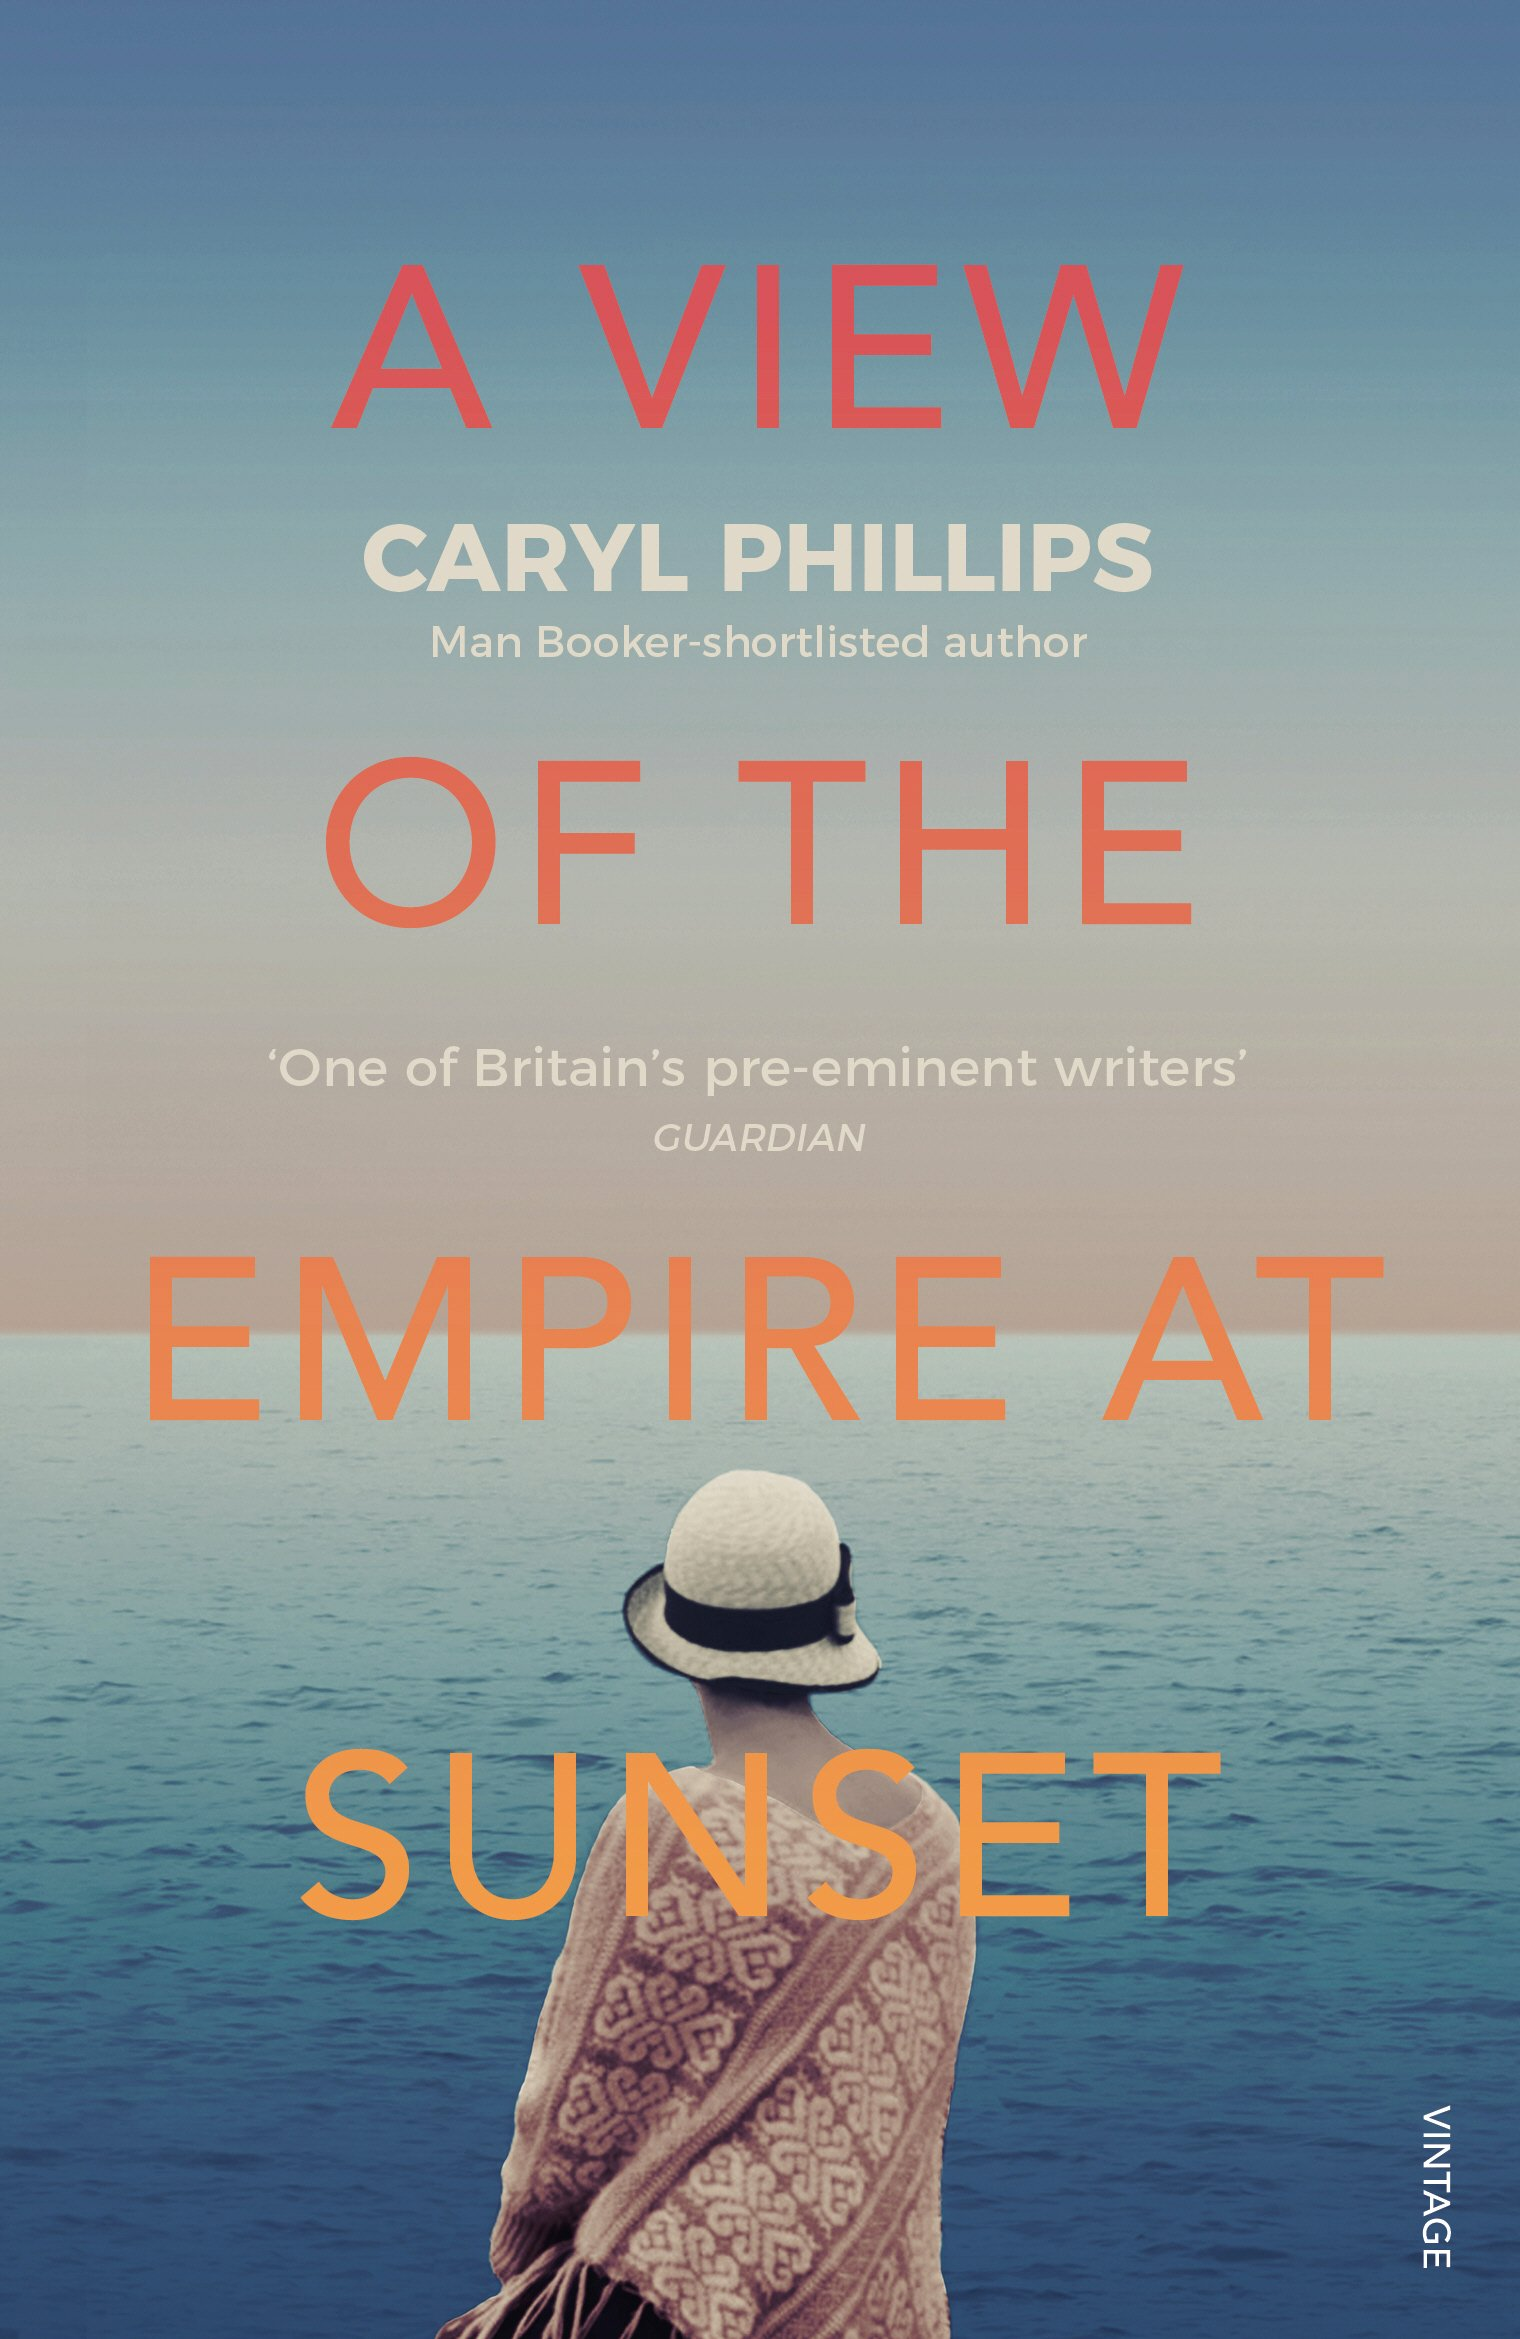 Download A View of the Empire at Sunset pdf